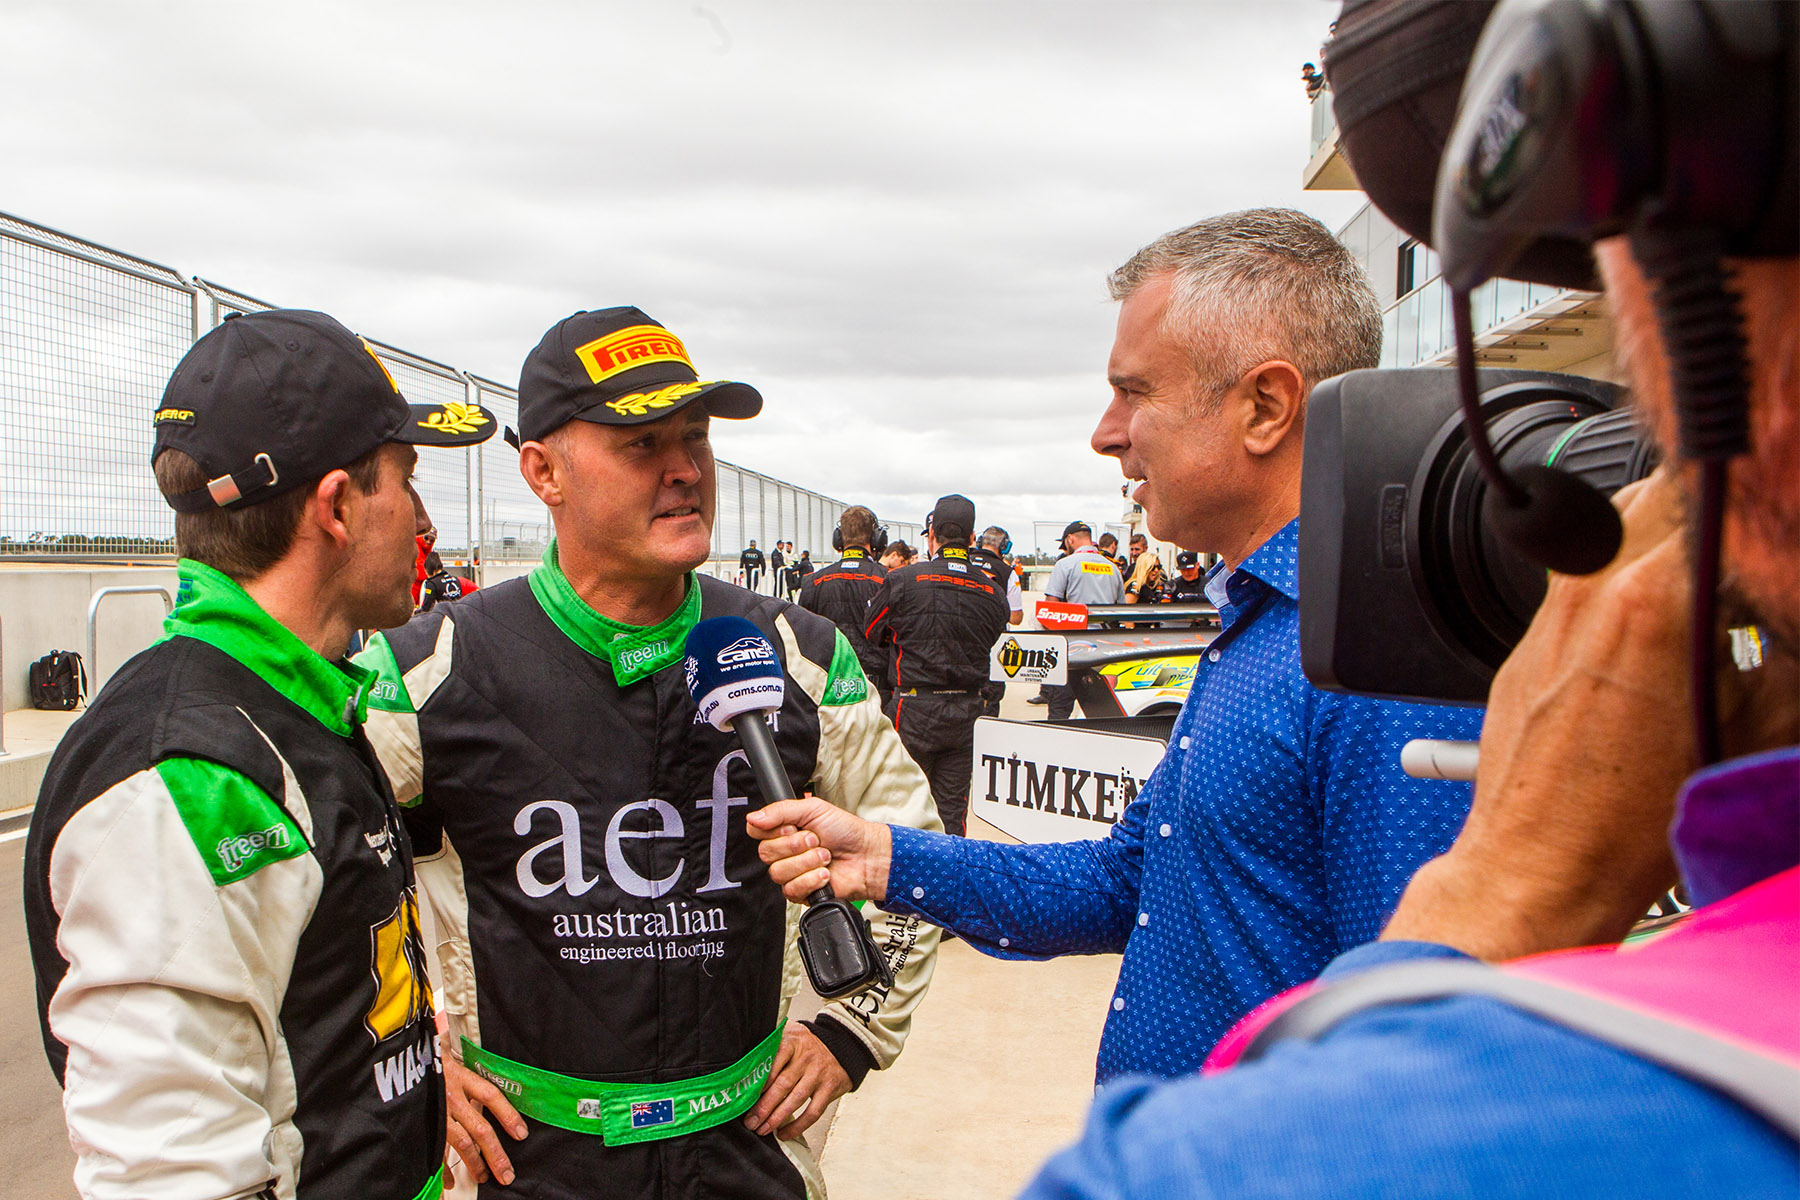 Australian GT TV coverage to be most extensive ever in 2019